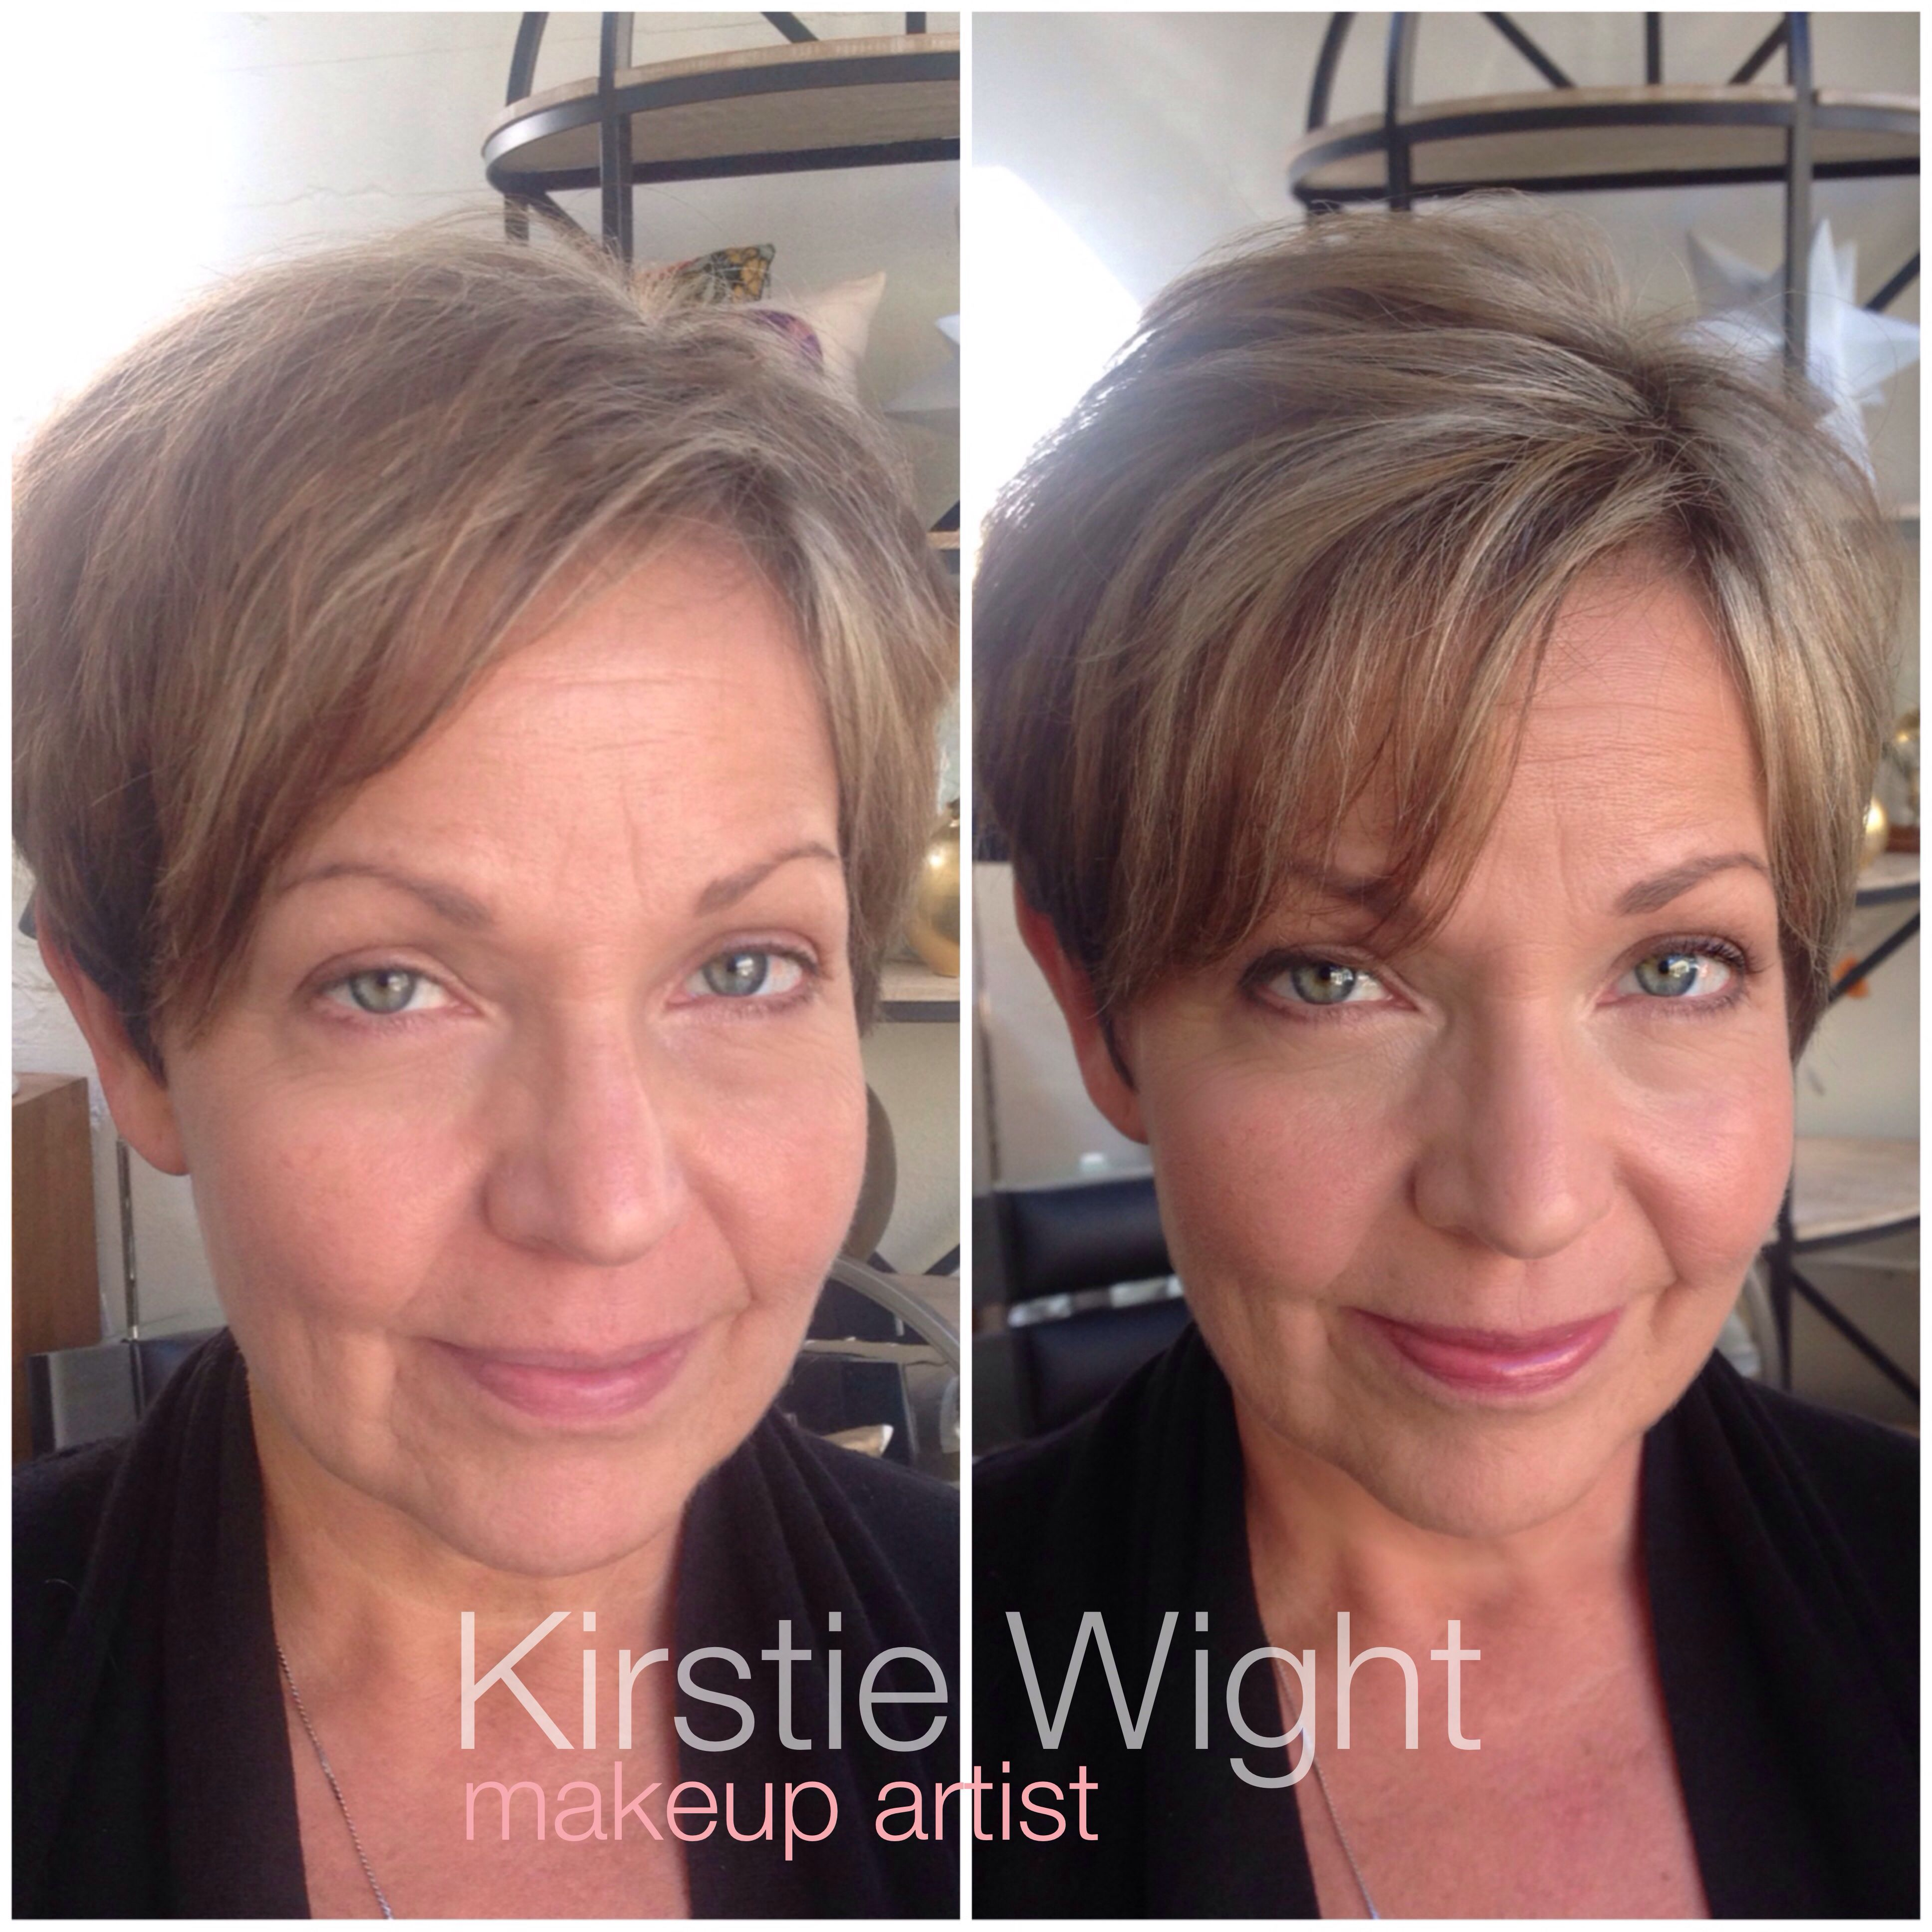 Kirstie Wight Makeup Artist Makeup Lesson Before/After